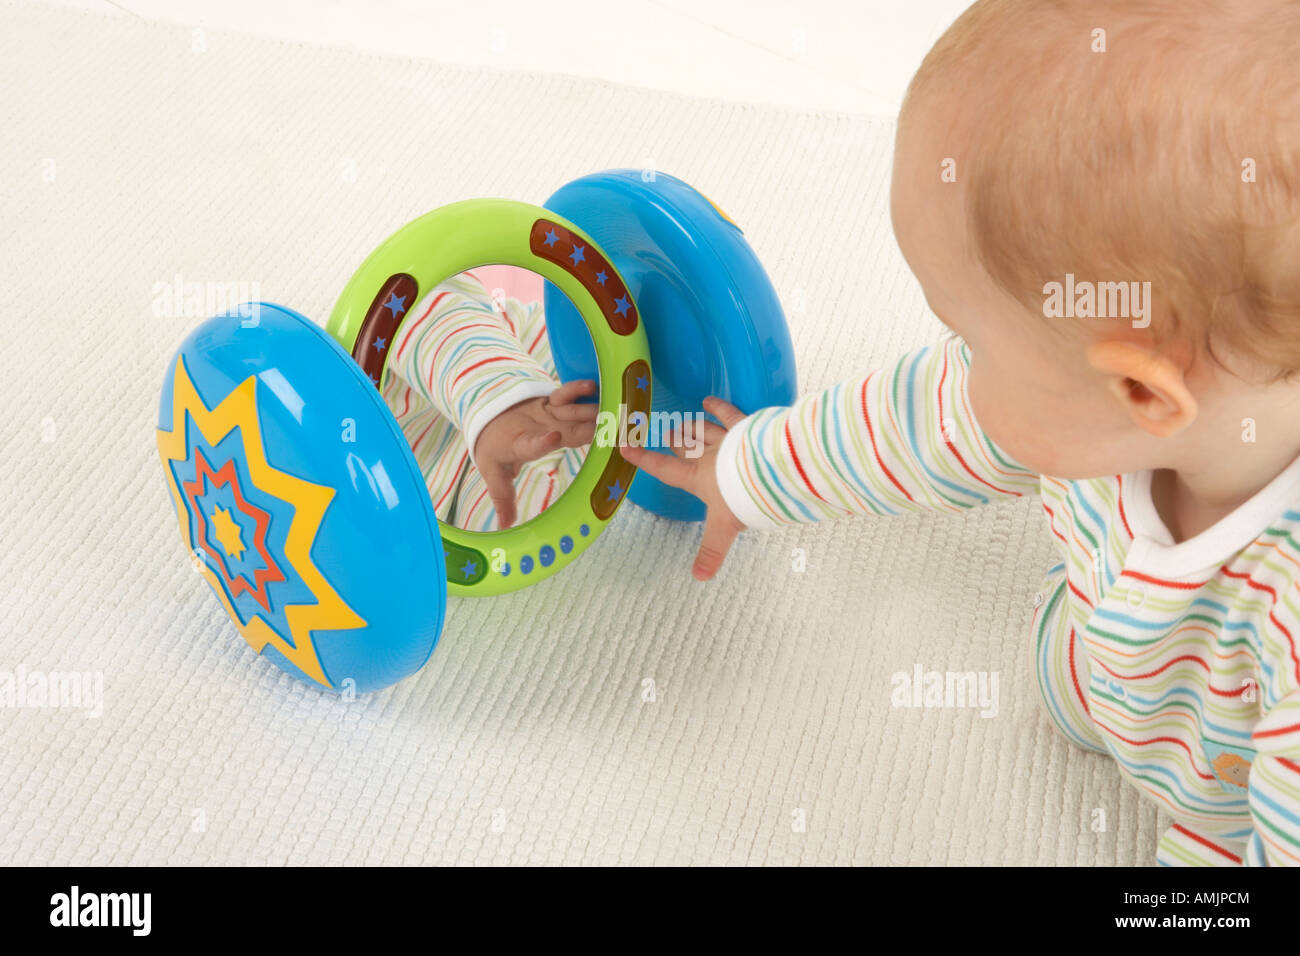 A baby plays on the floor with a mirror on wheels toy Stock Photo ...